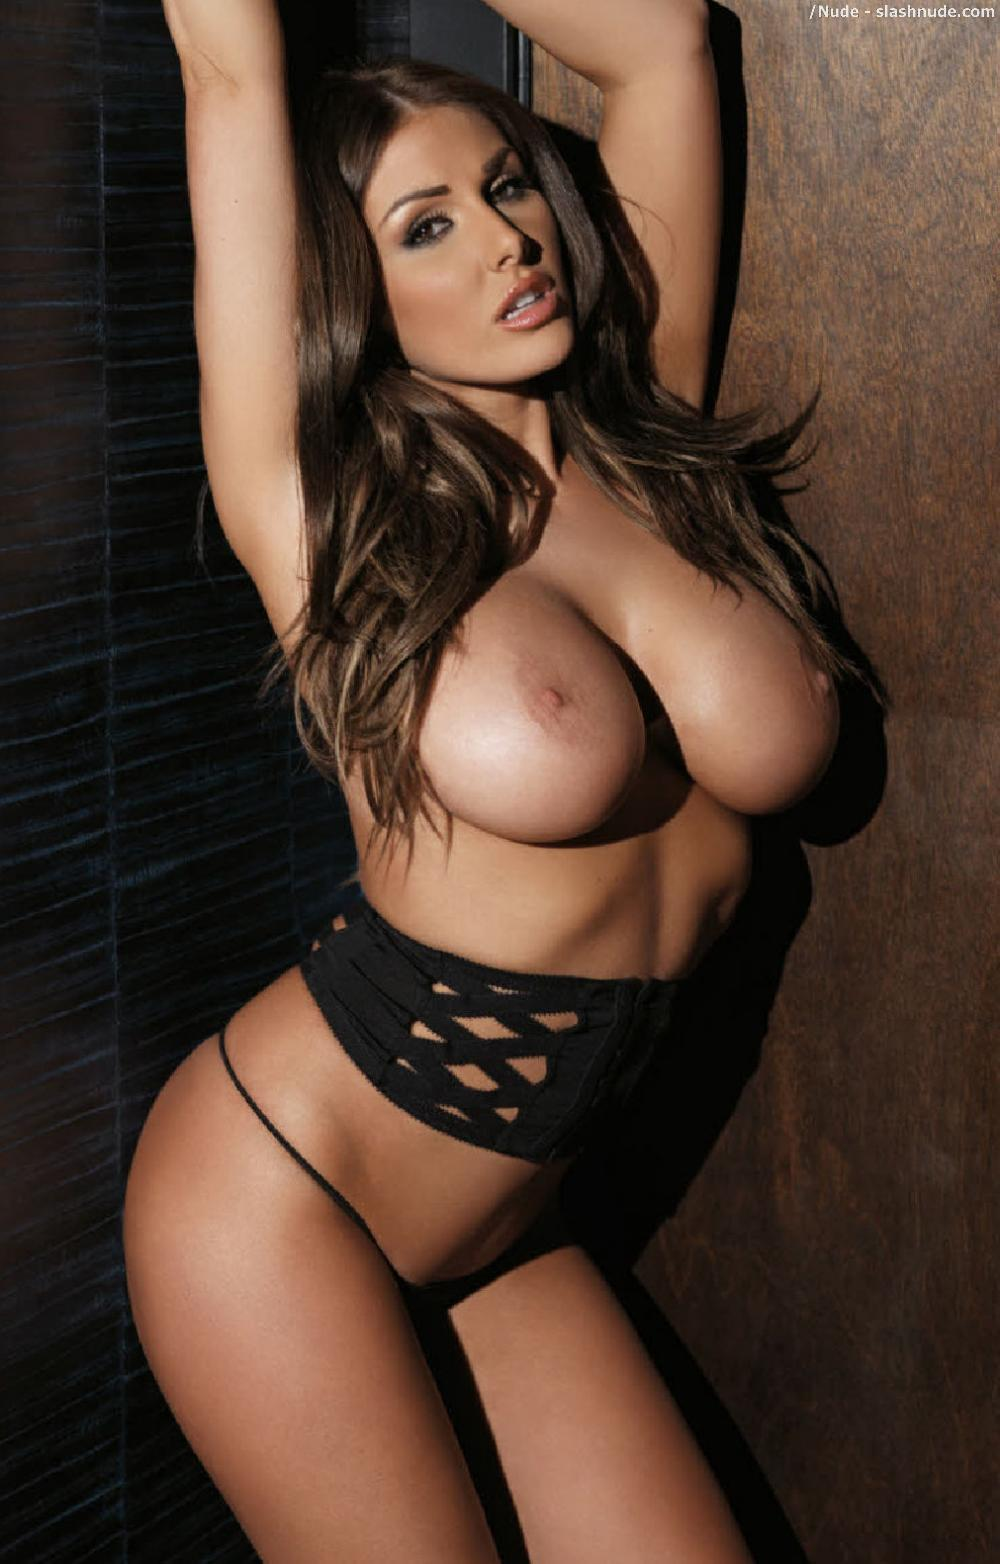 Lucy pinder nude naked topless